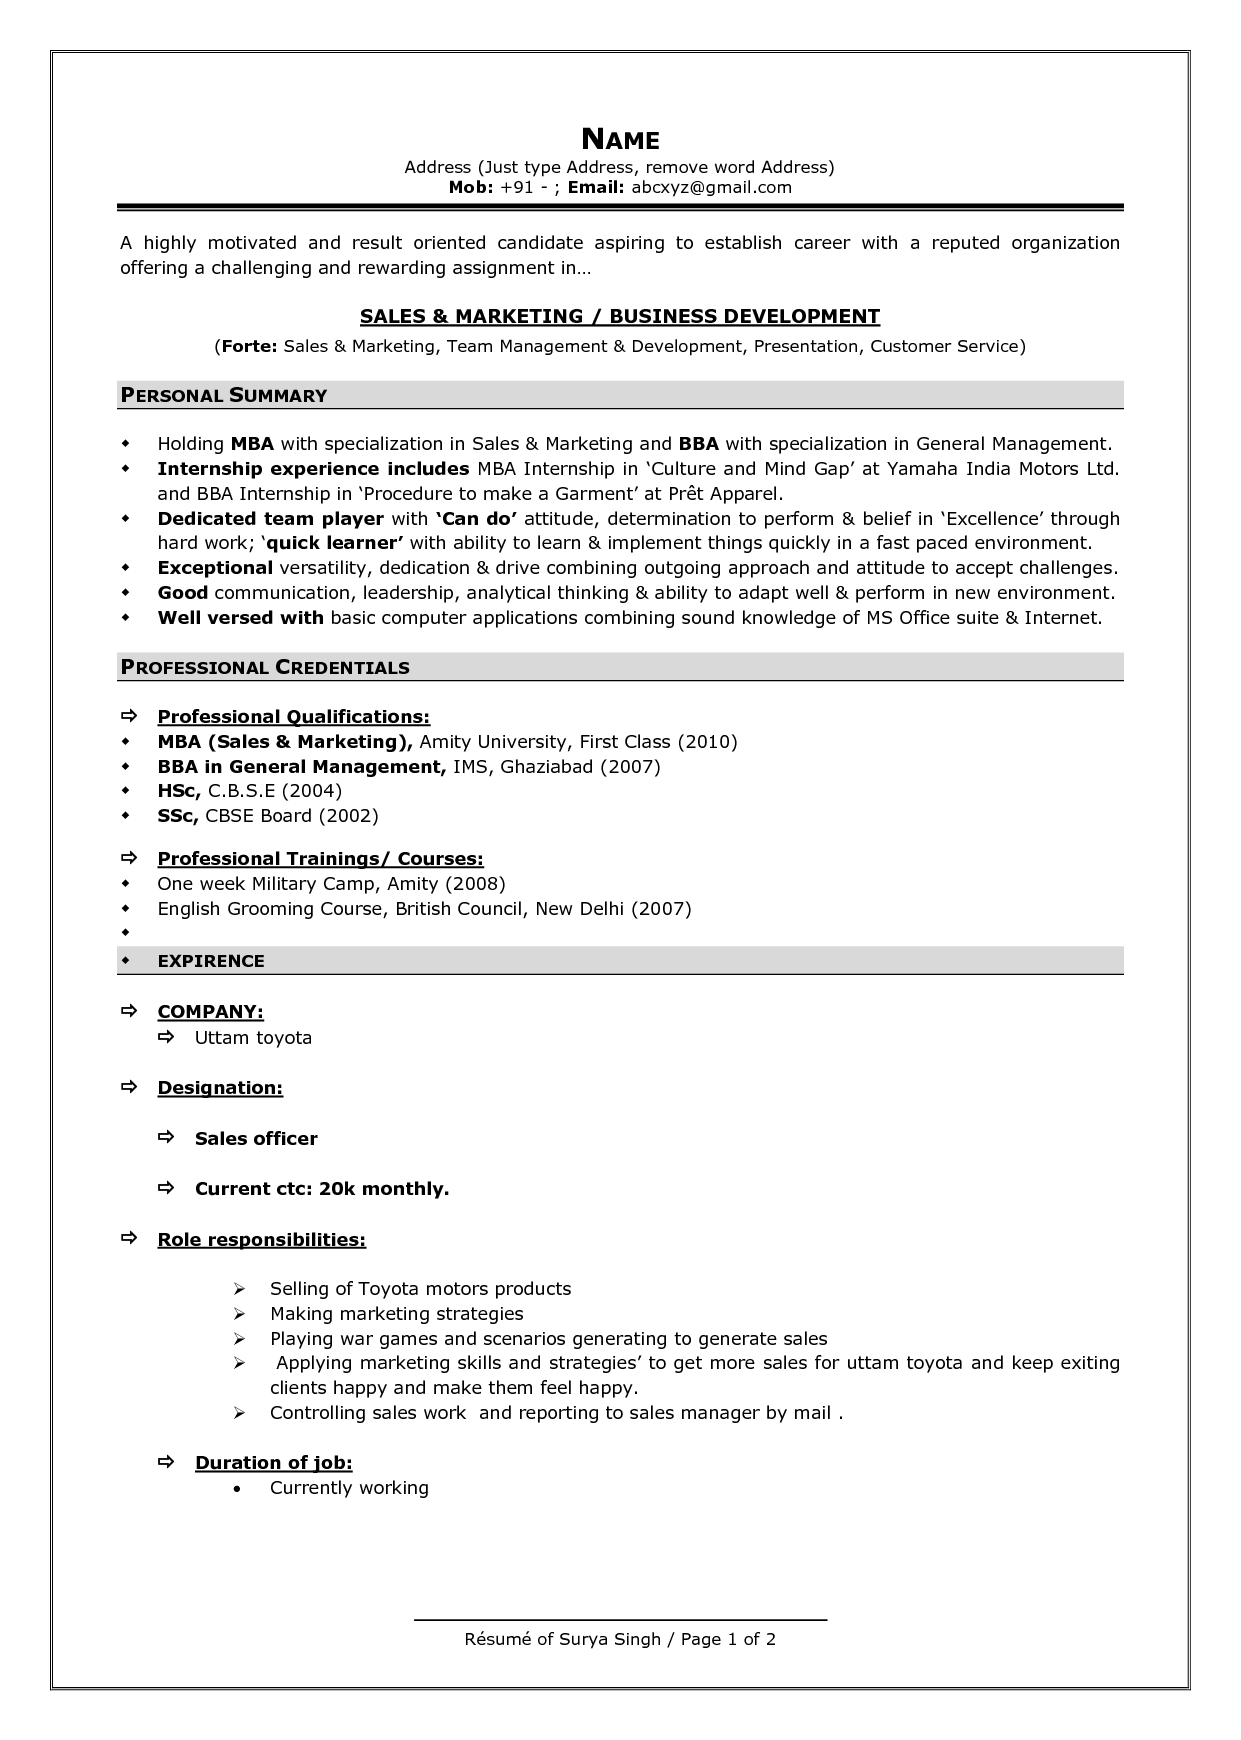 221 png 1241×1740 resume professional resume 221 png 1241×1740 experienced resumeexperienced